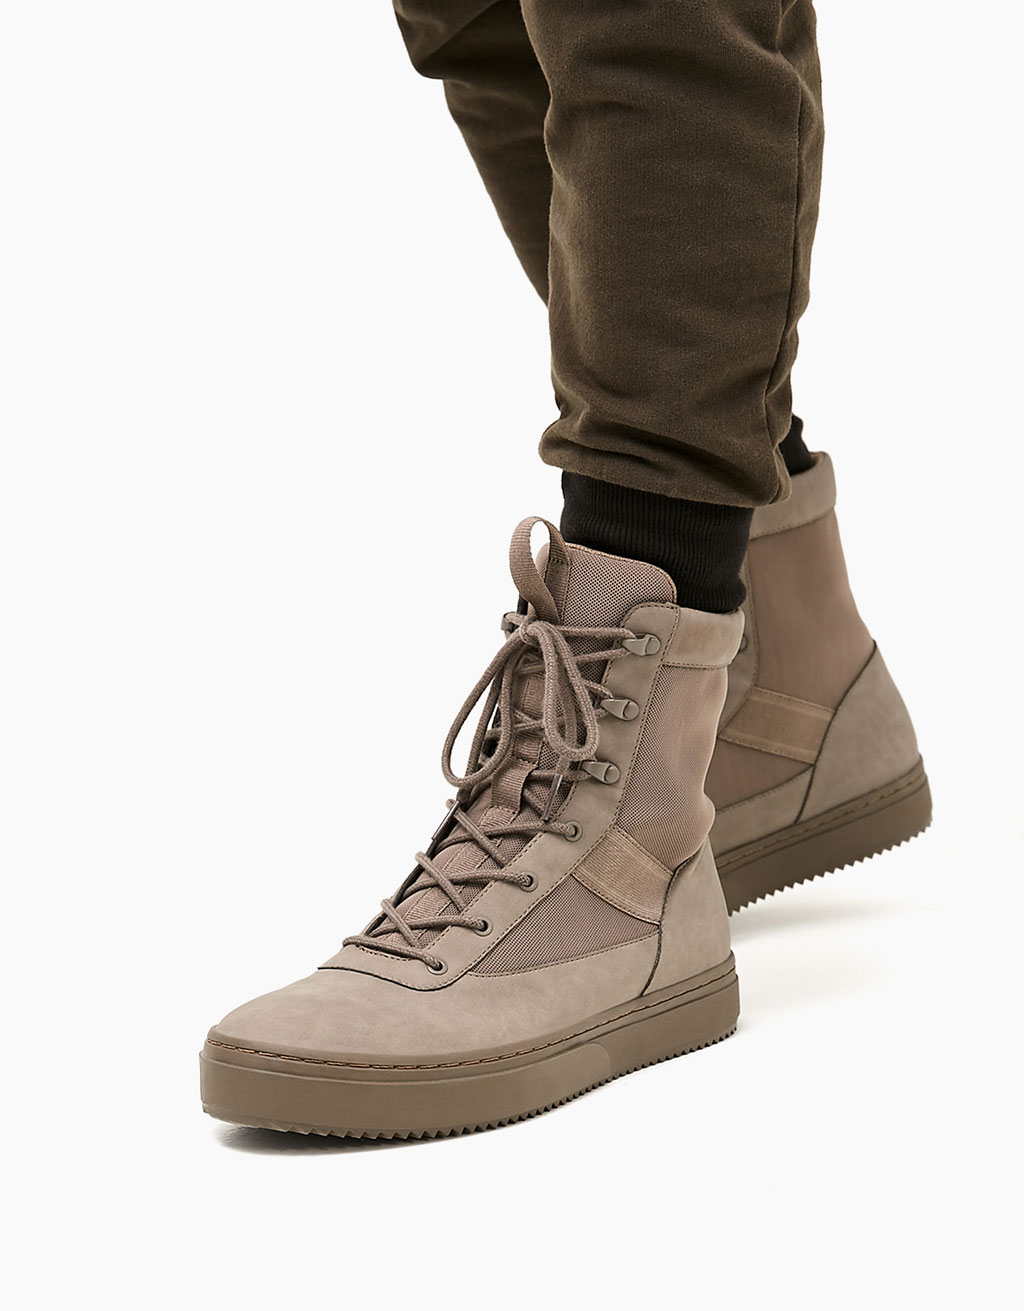 Men's combined high tops